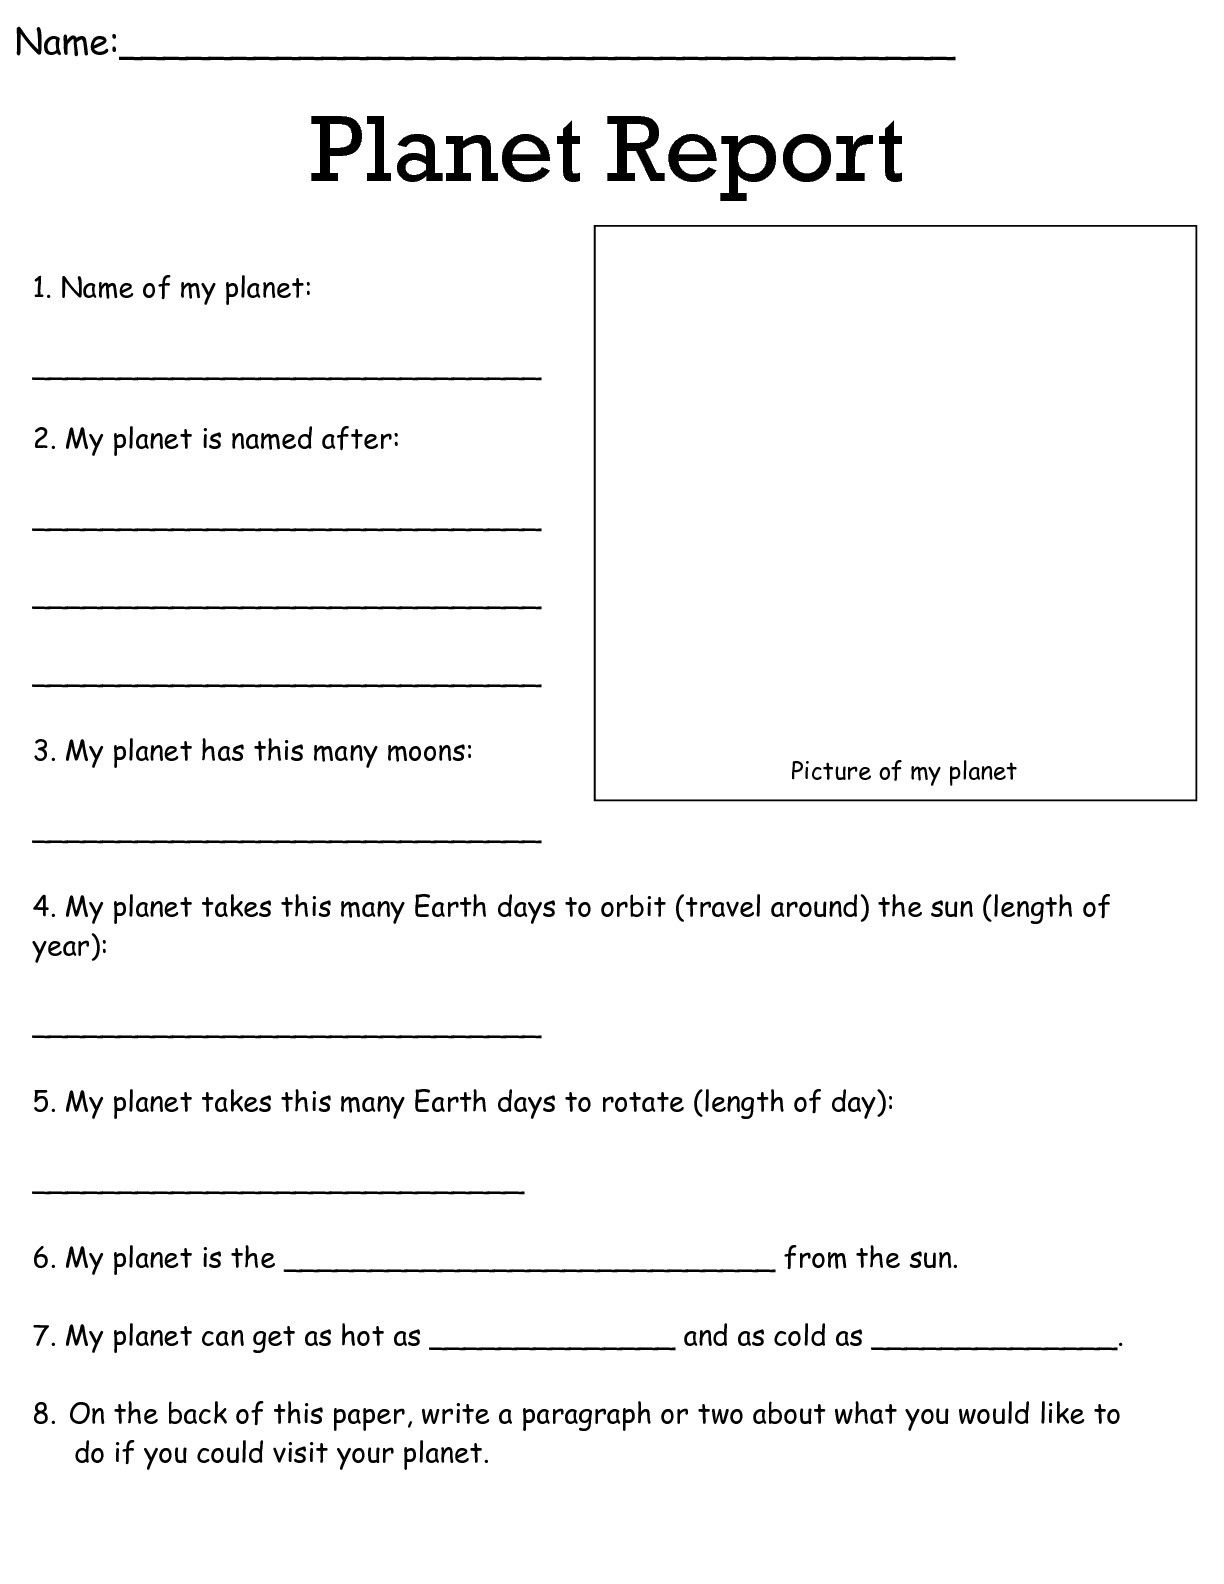 Job Worksheets 5Th &6Th | Science Worksheets Science Worksheets - Free Printable Science Worksheets For 2Nd Grade